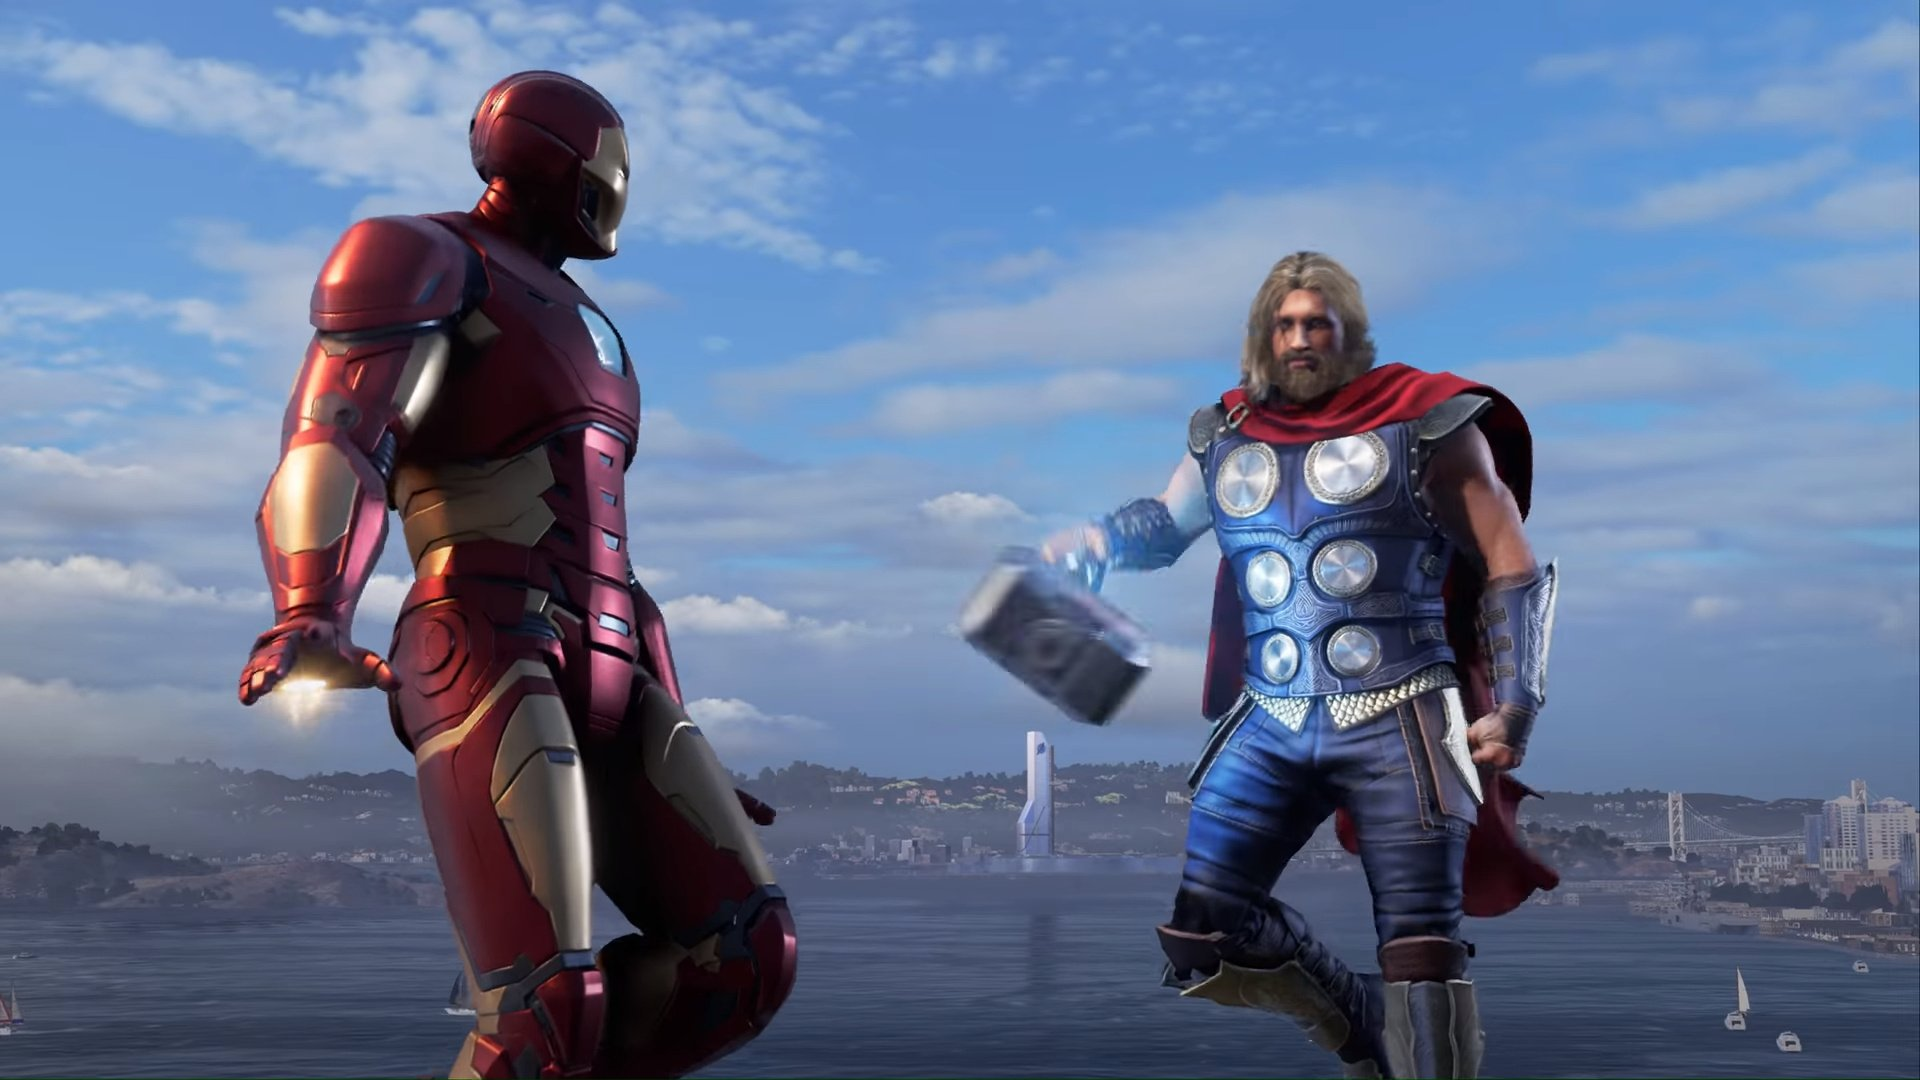 Marvel's Avengers Promises More Content as Player Numbers Dwindle